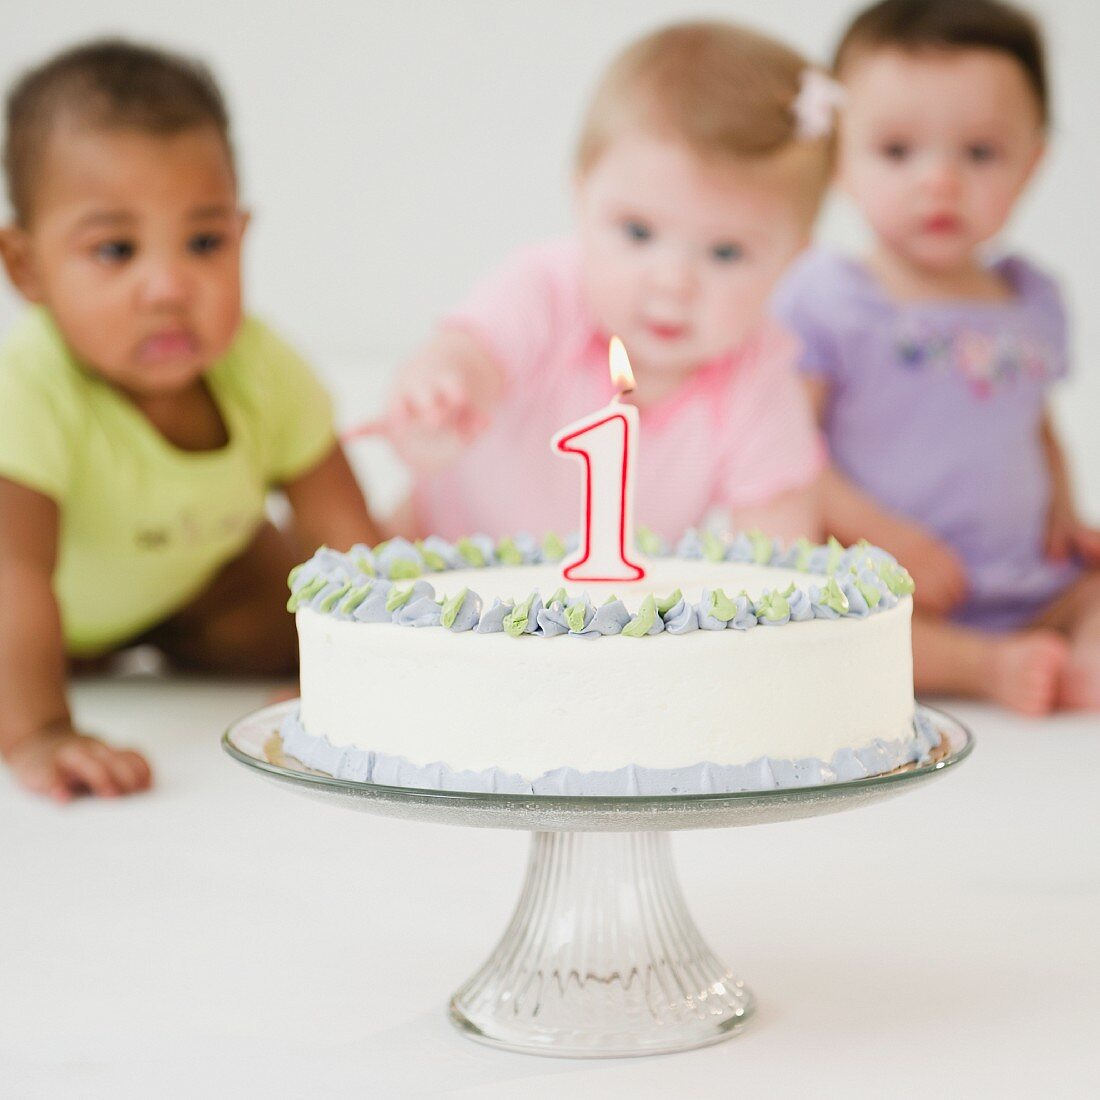 Babies looking at first birthday cake